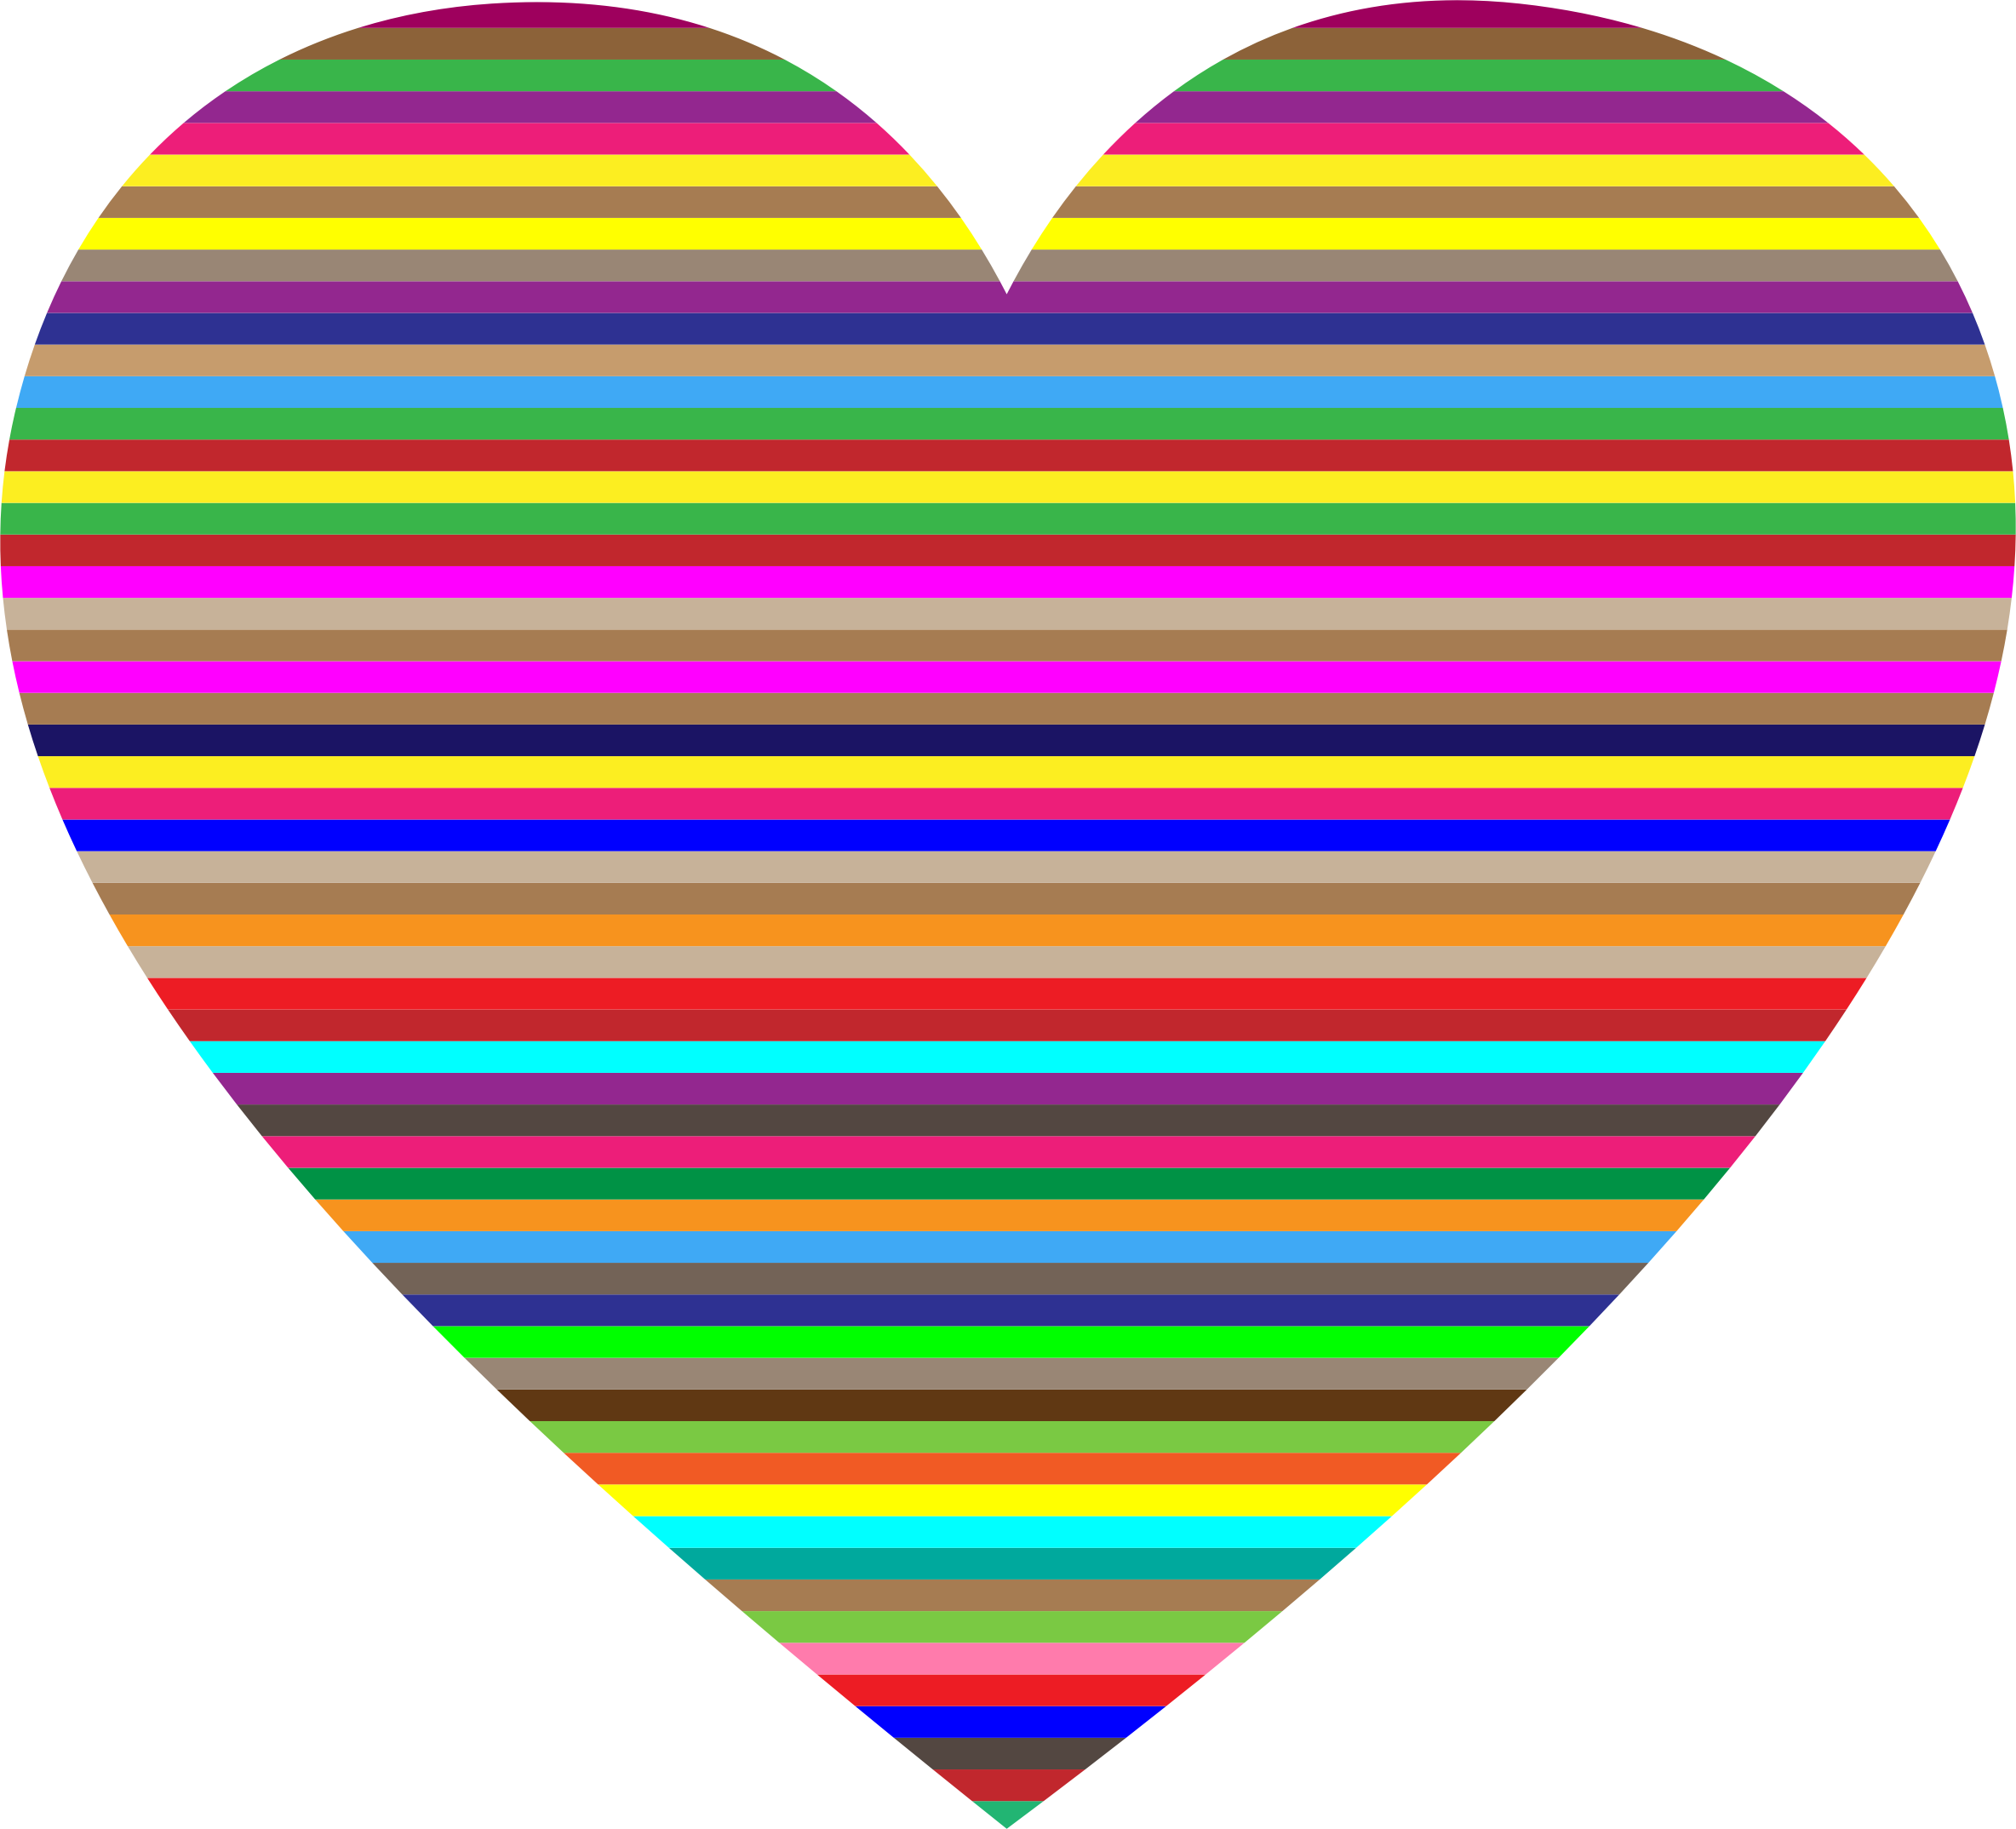 Horizontal clipart. Colorful striped heart big